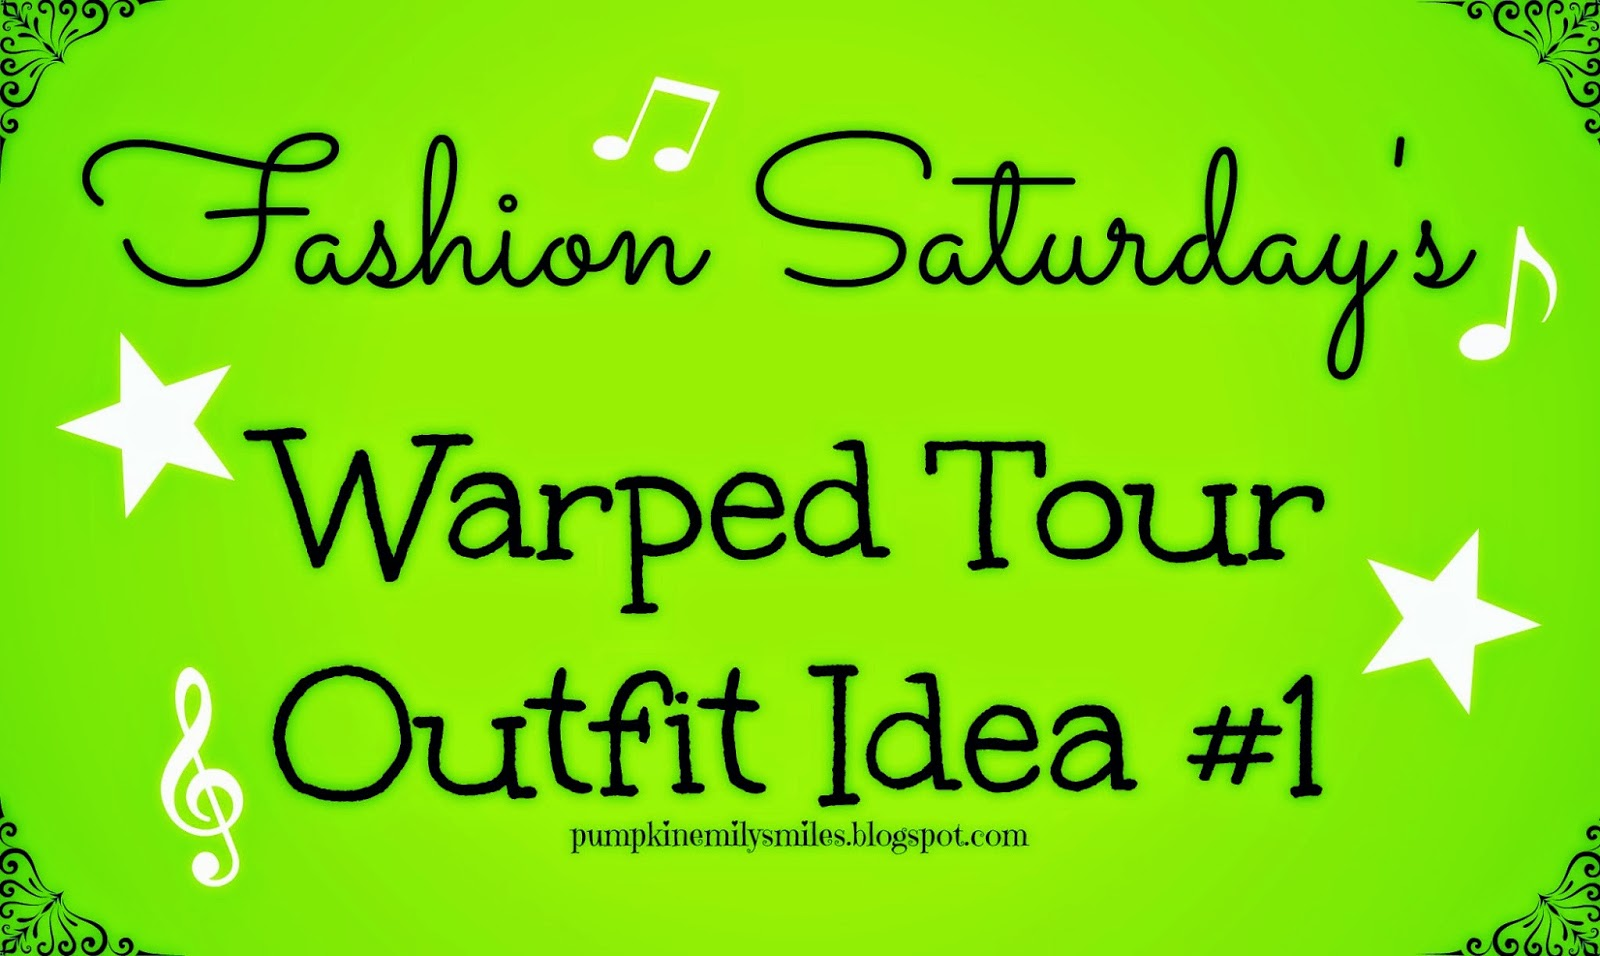 Fashion Saturday's Warped Tour Outfit Idea #1